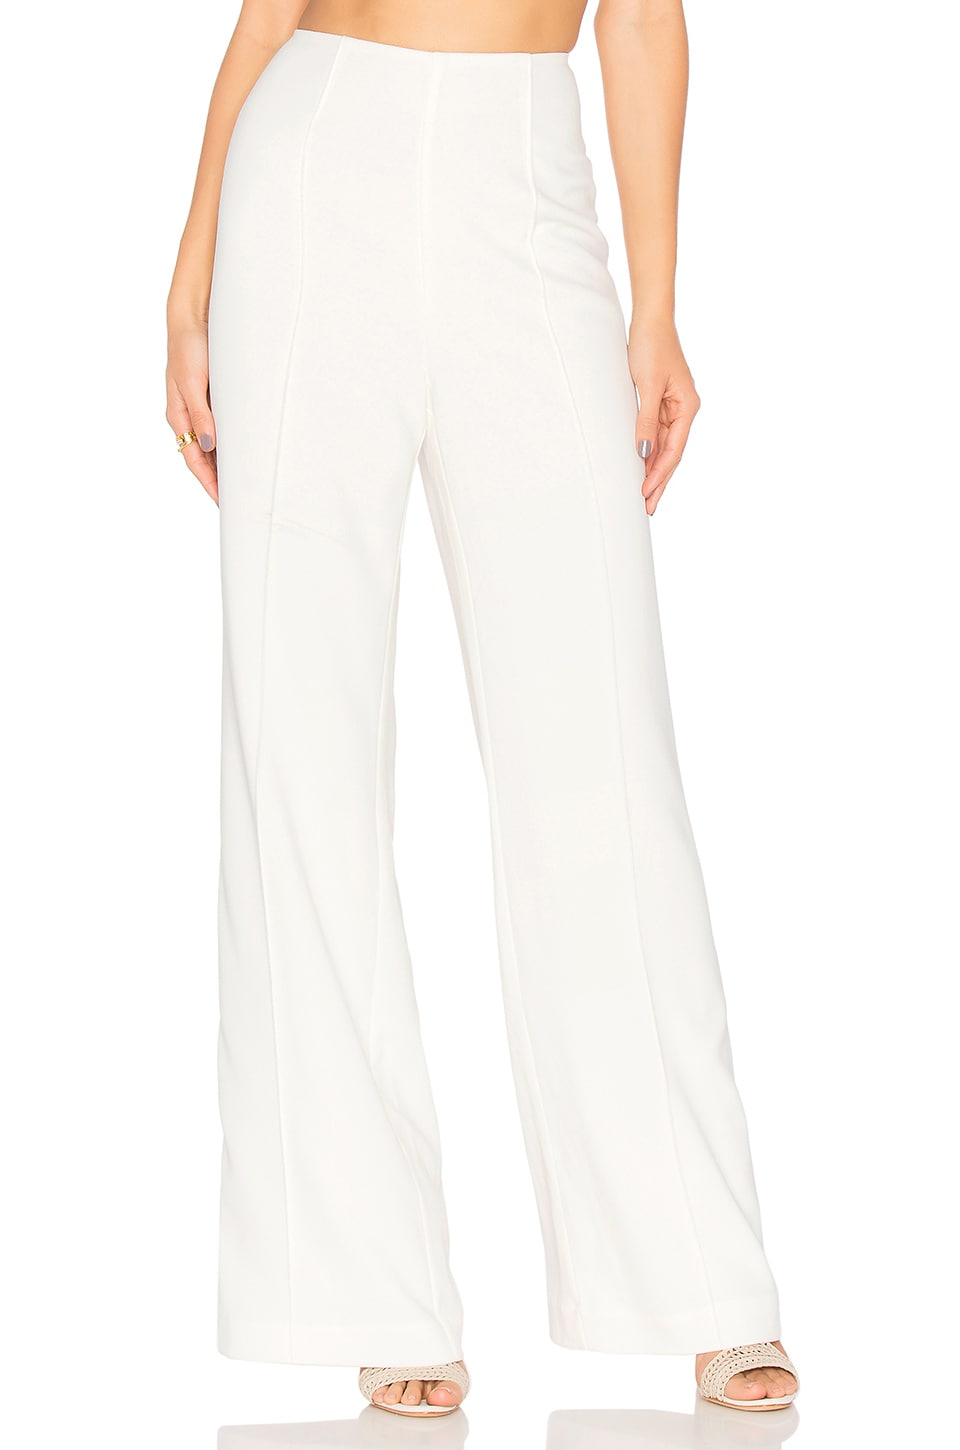 C/MEO Flawless Pant in Ivory